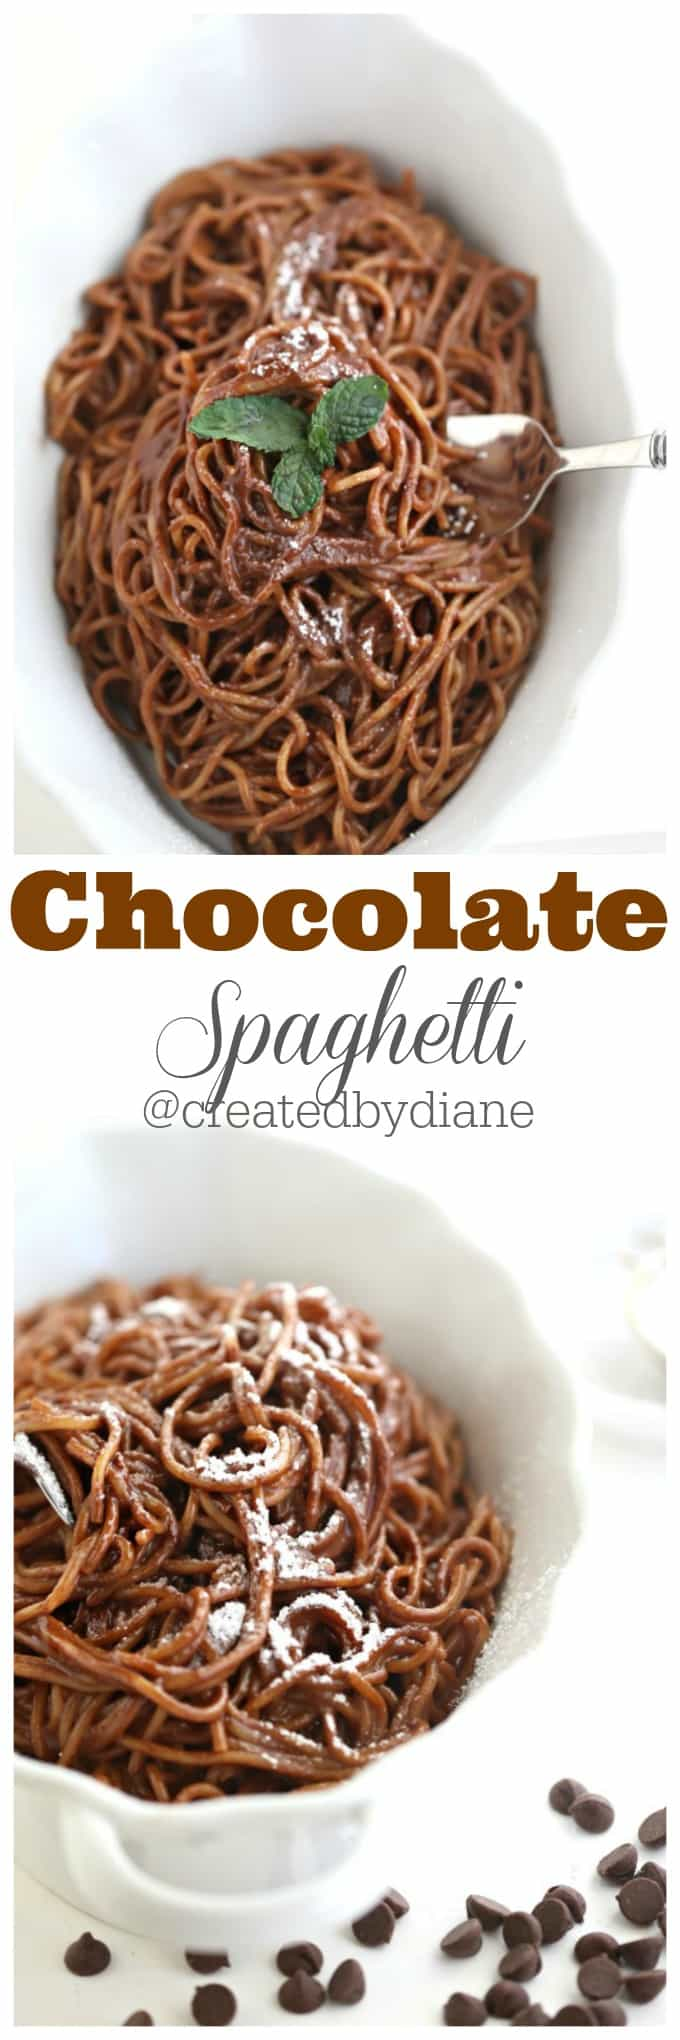 Chocolate Spaghetti Recipe perfect comfort food @createdbydiane